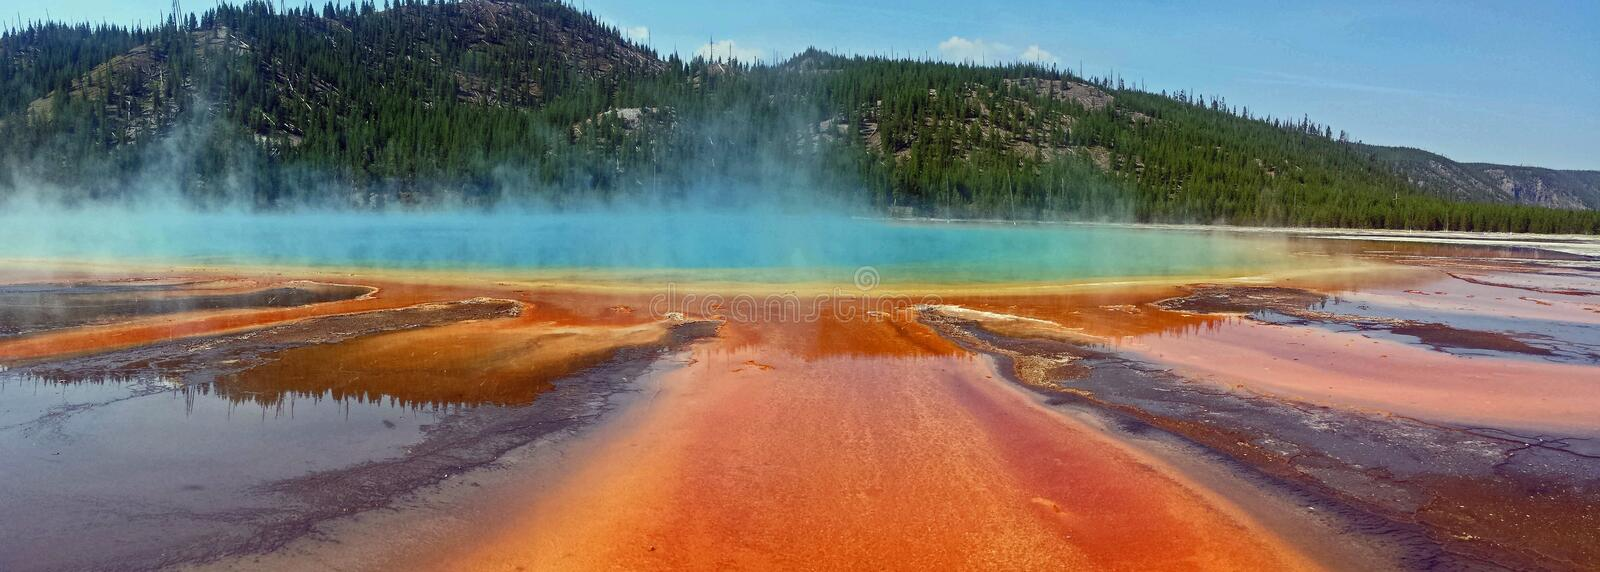 Grand Prismatic Spring, Yellowstone National Park stock photography